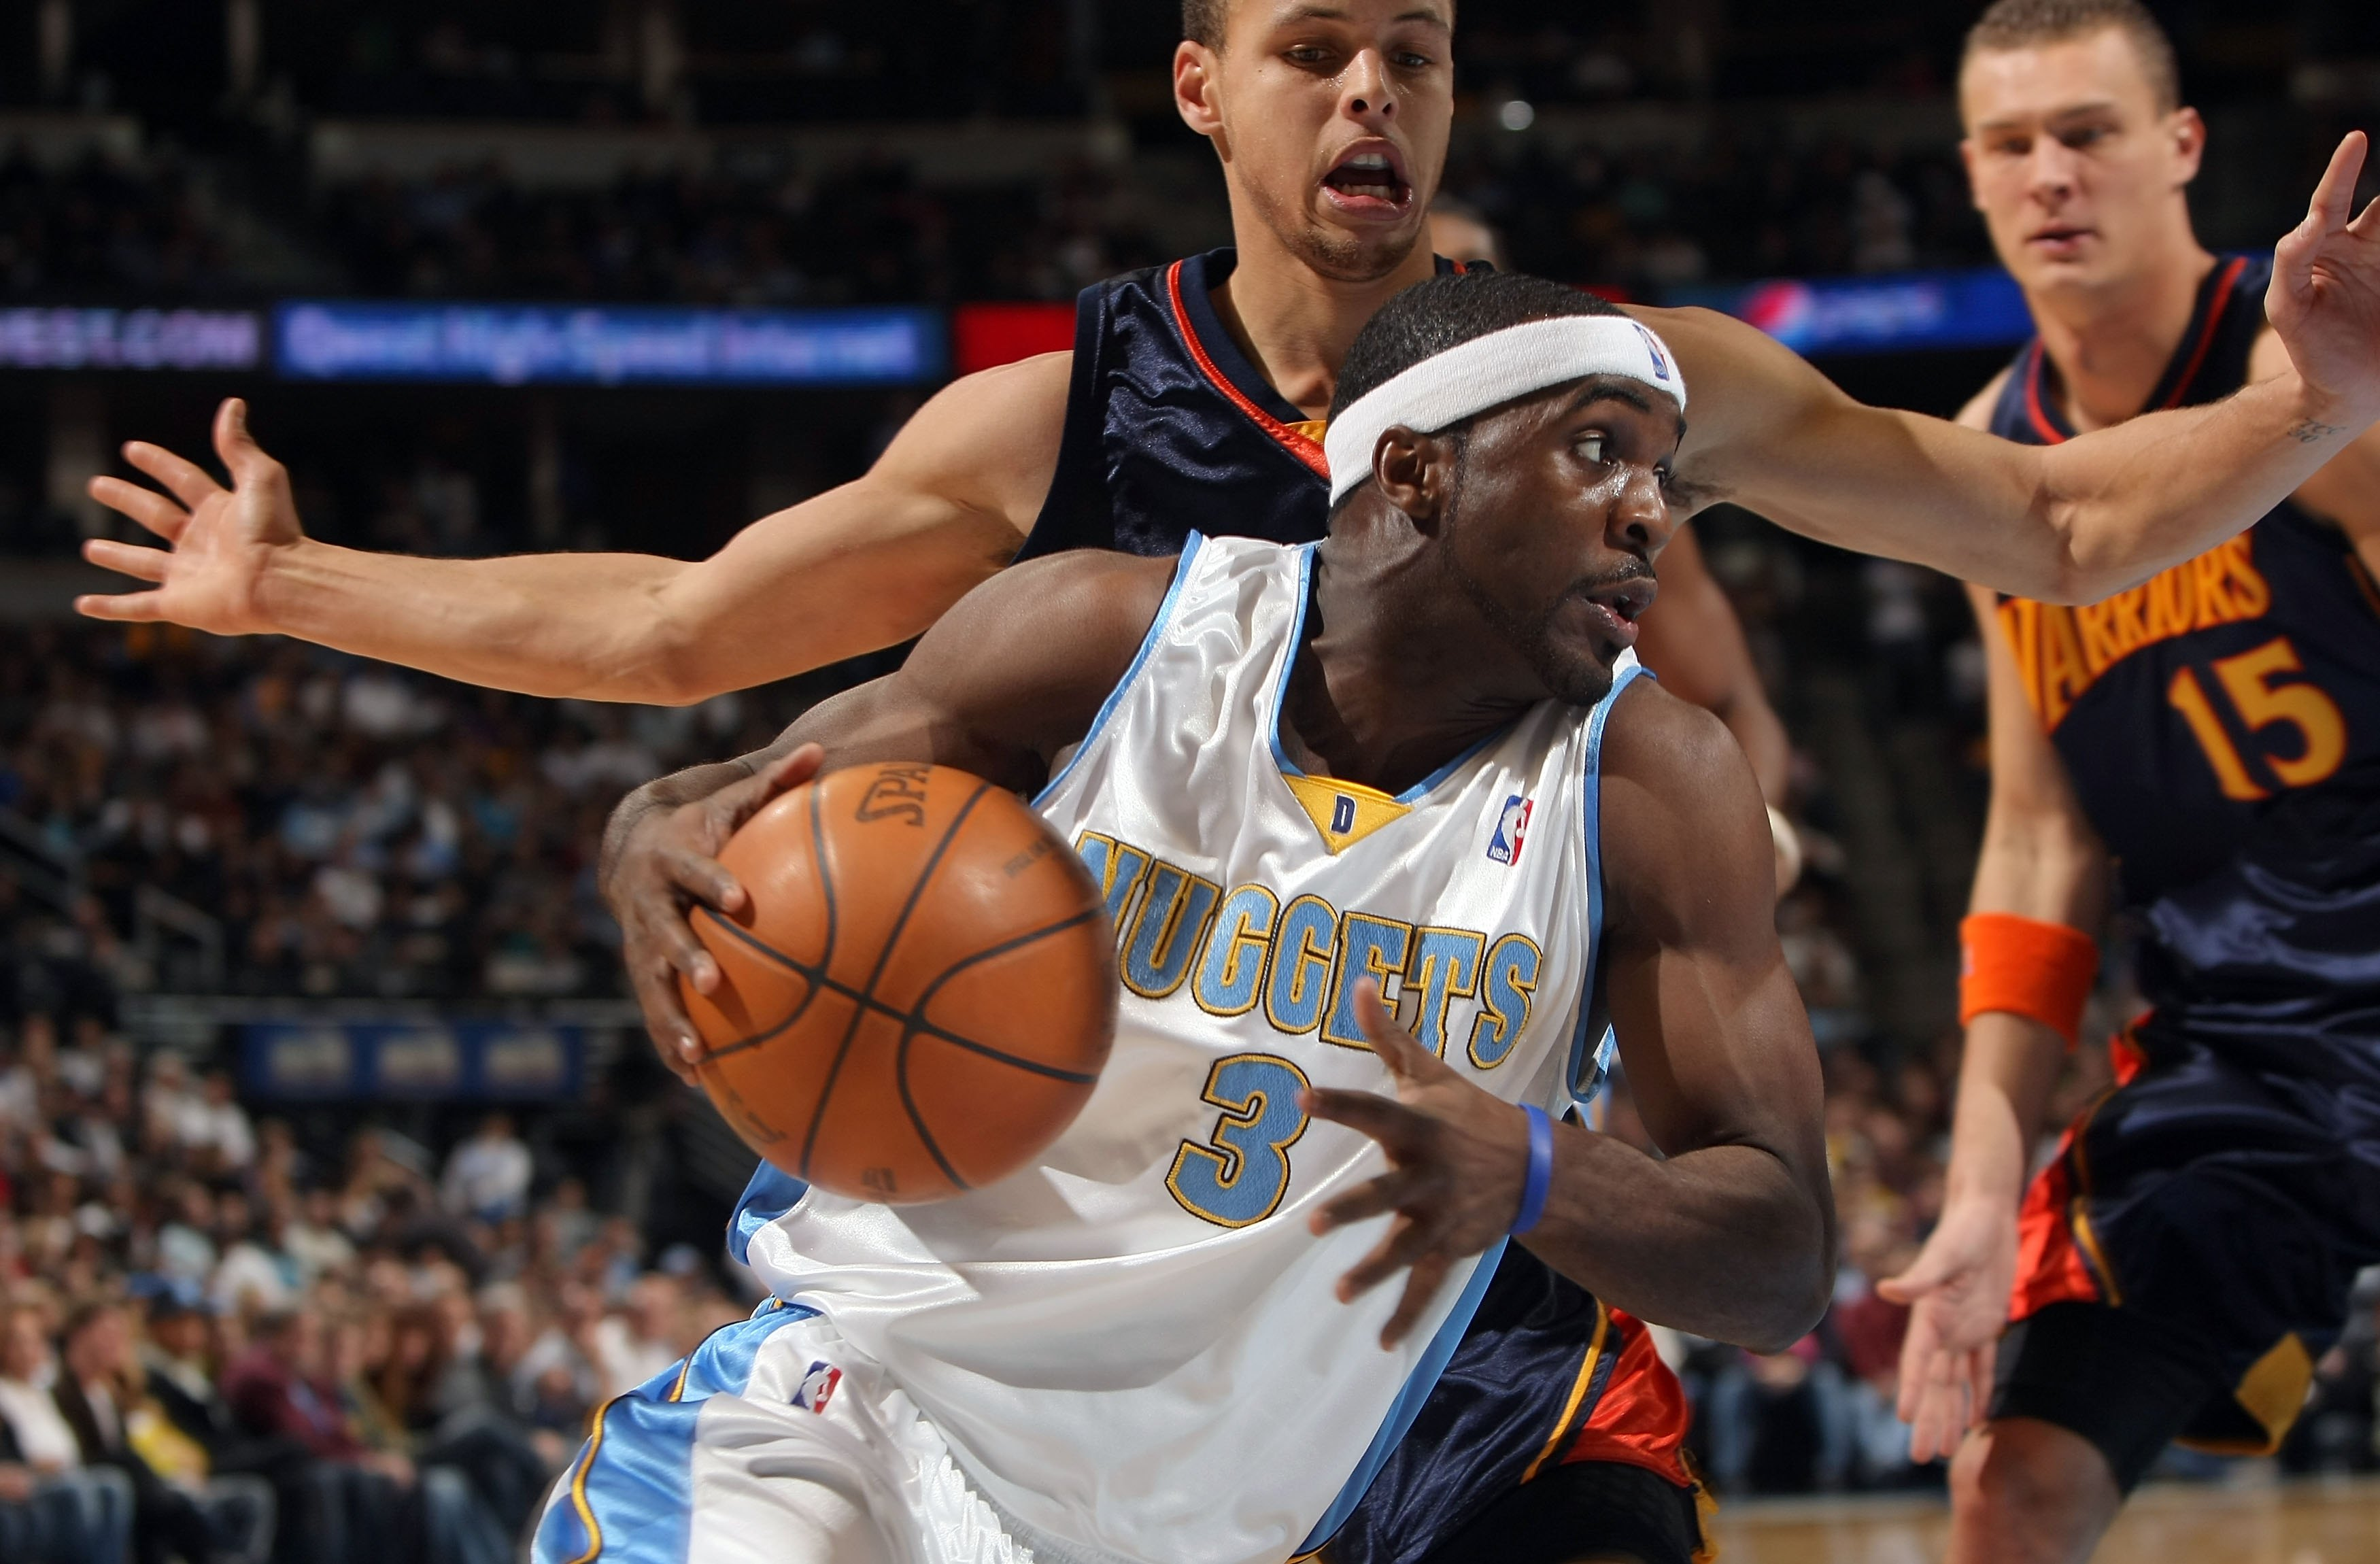 DENVER - JANUARY 05:  Ty Lawson #3 of the Denver Nuggets drives the ball past Stephen Curry #30 and Andris Biedrins #15 of the Golden State Warriors at the Pepsi Center on January 5, 2010 in Denver, Colorado. The Nuggets defeated the Warriors 123-122. NOT